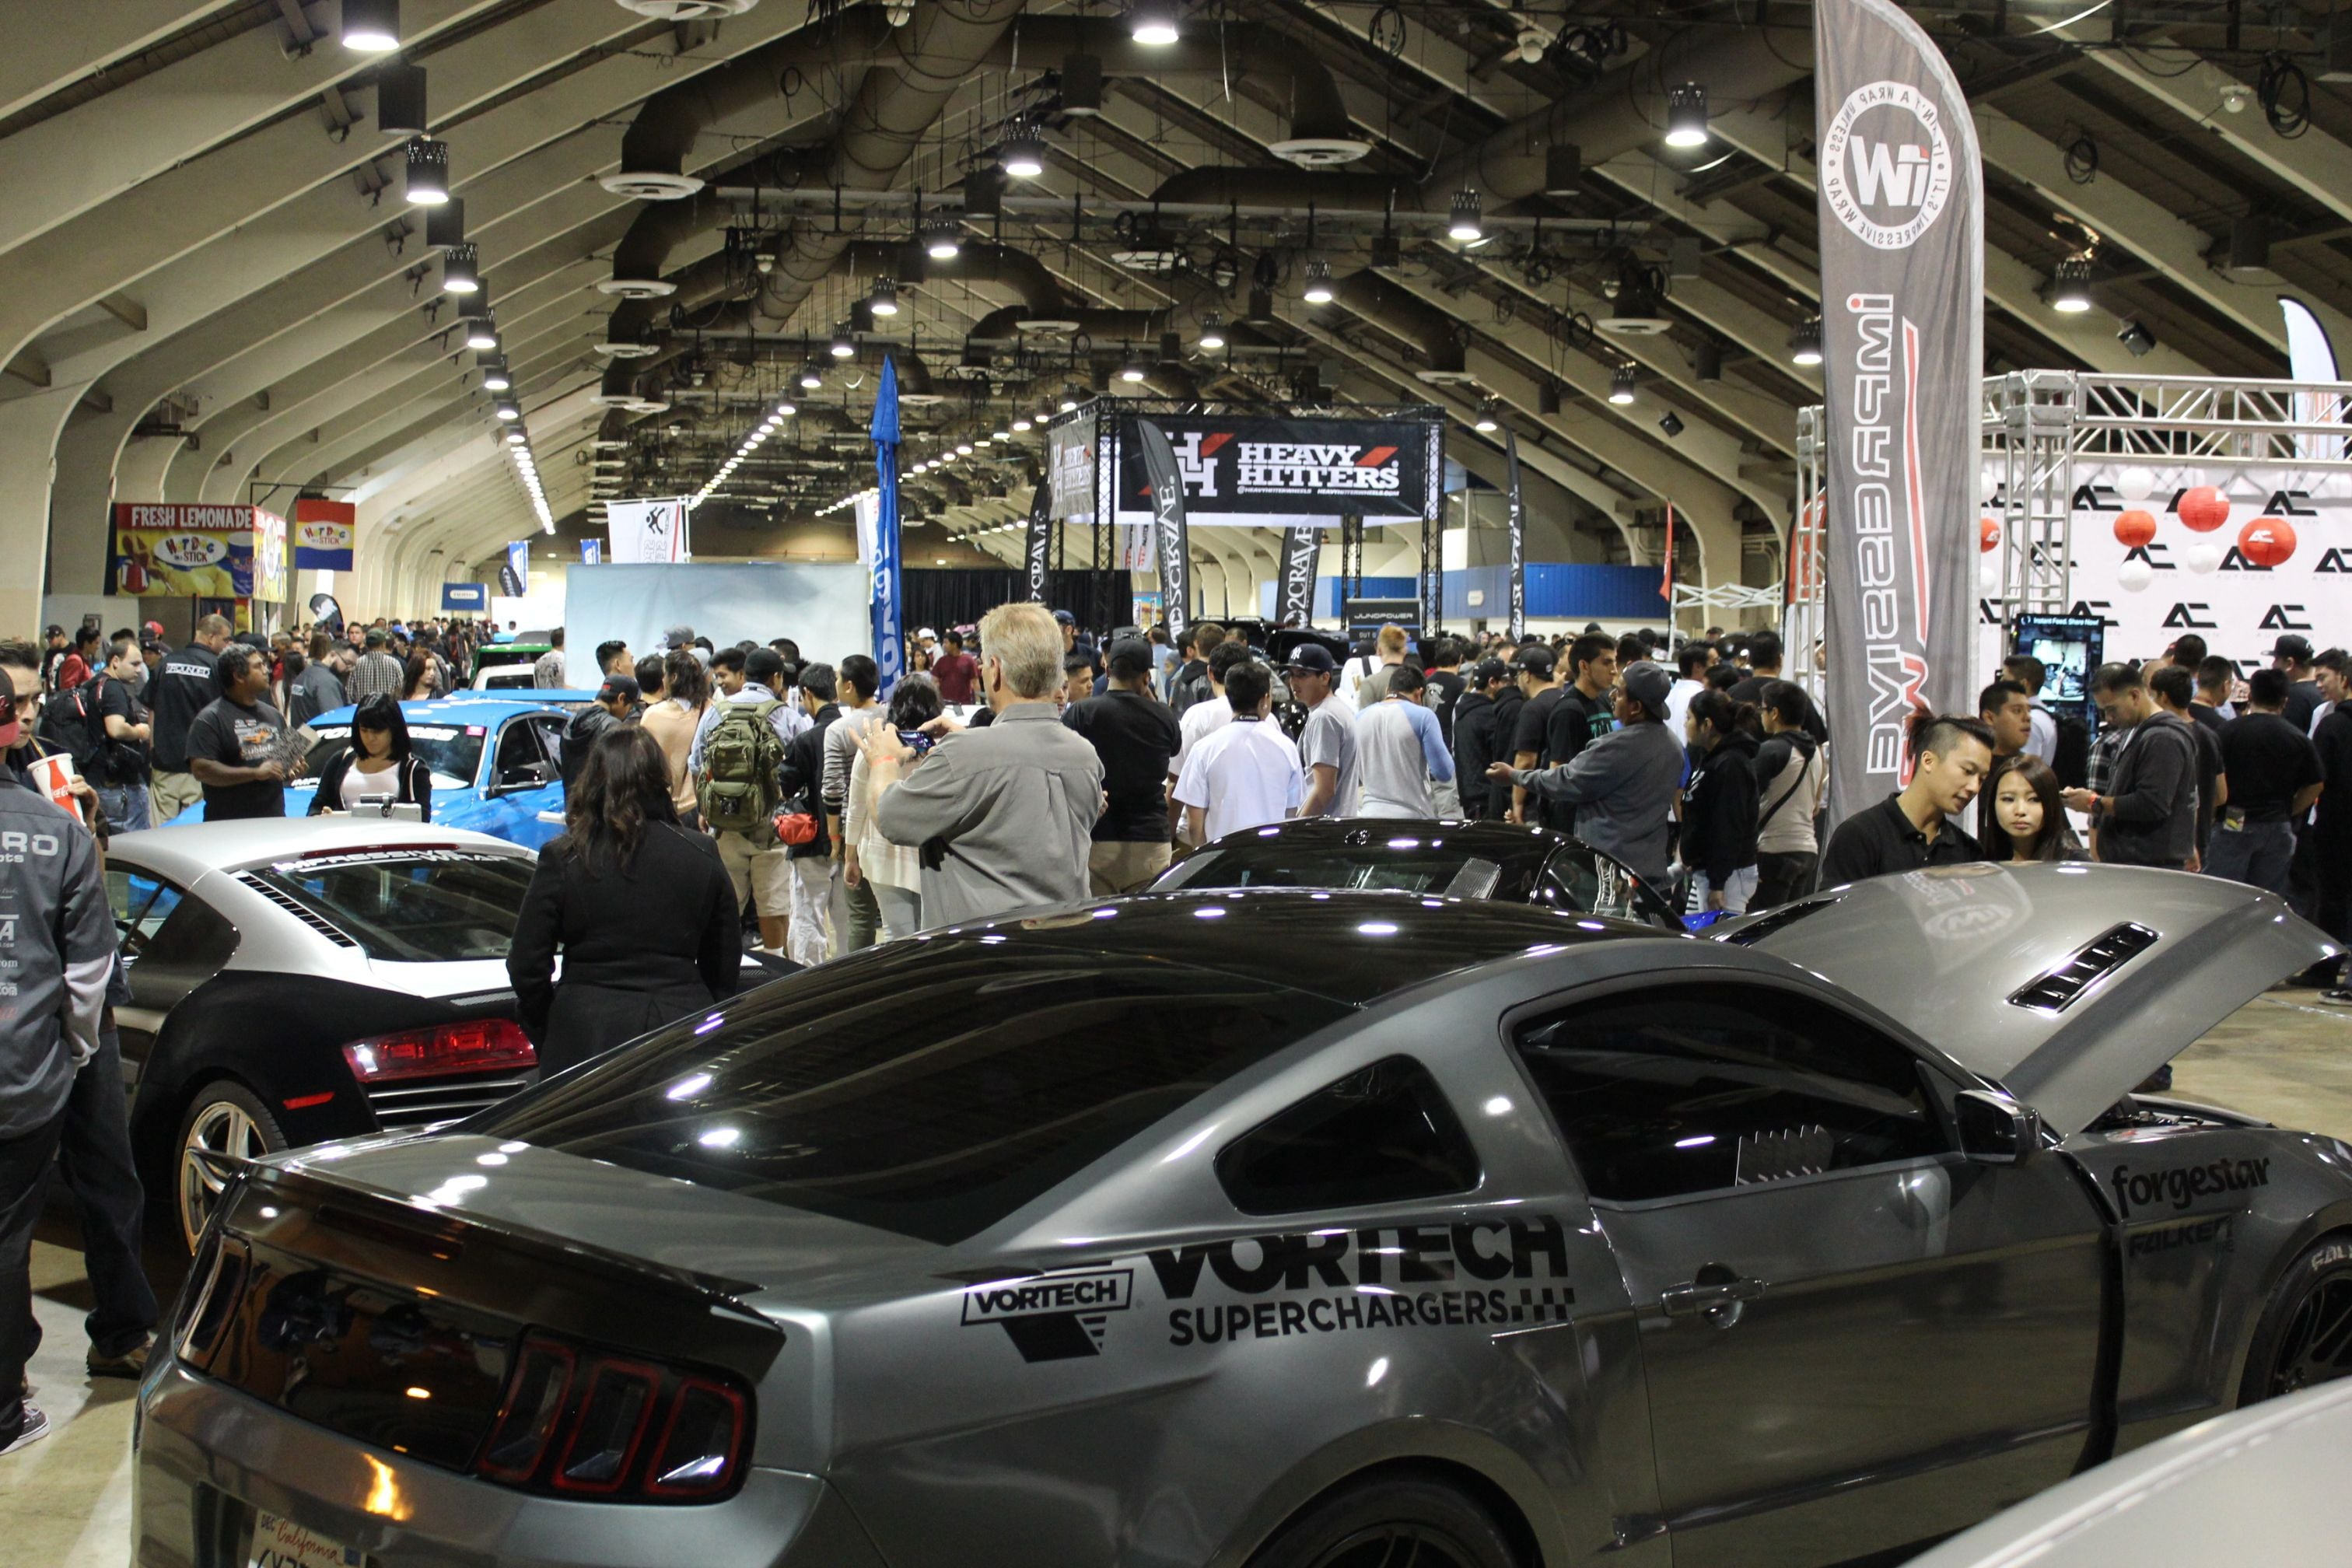 Indoor crowd from Autocon LA 2014